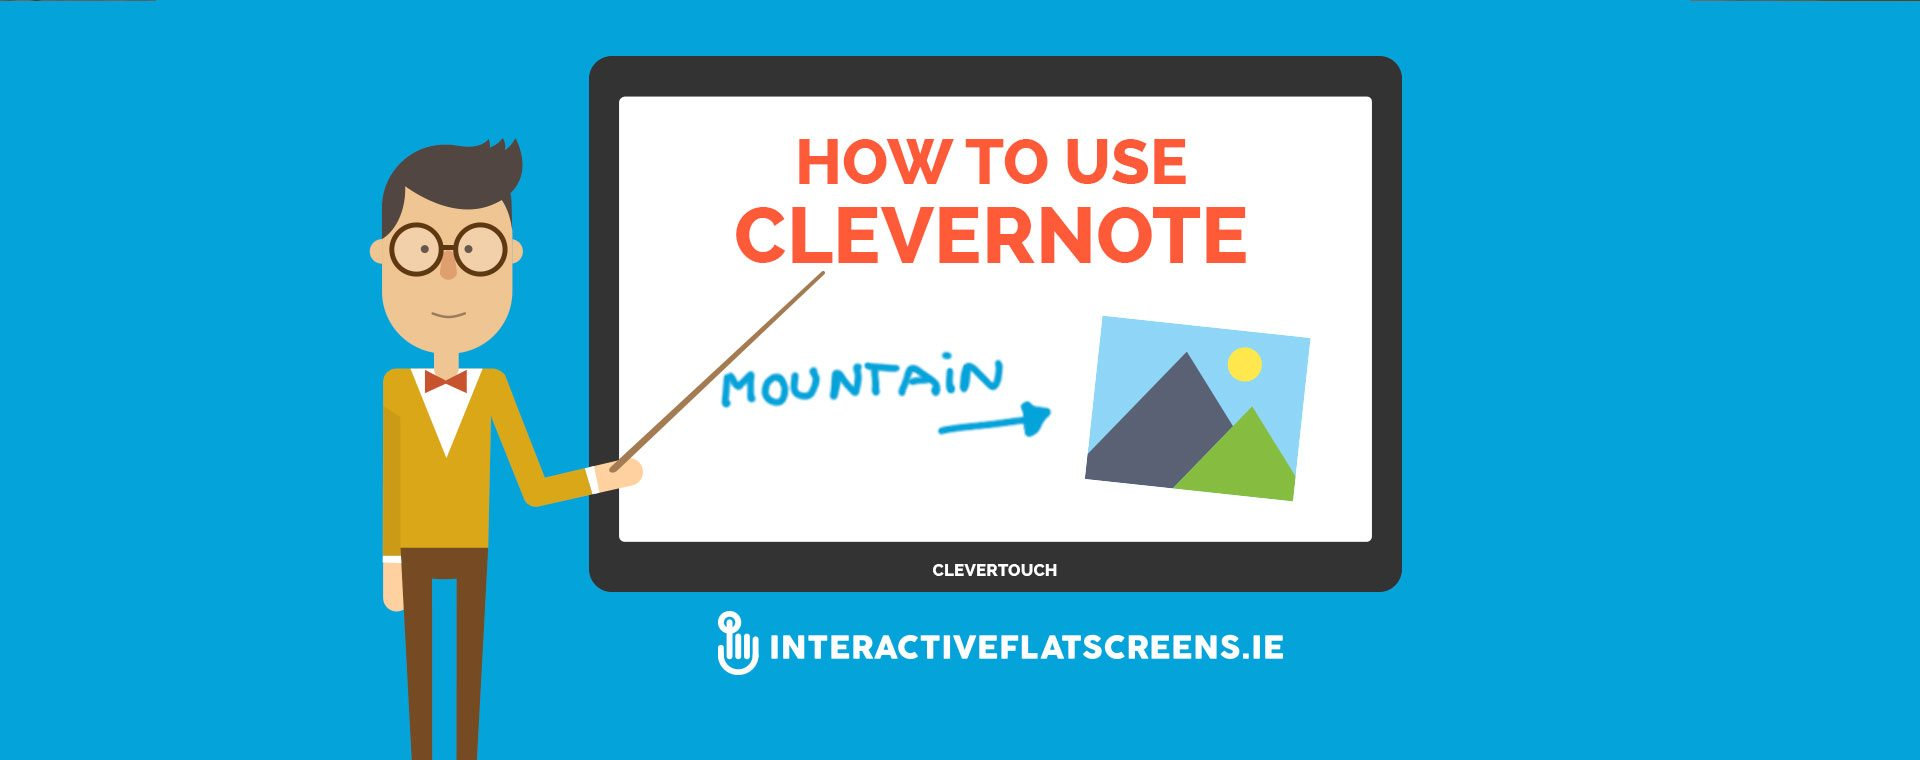 How to Use CleverNote - Clevertouch Training Video